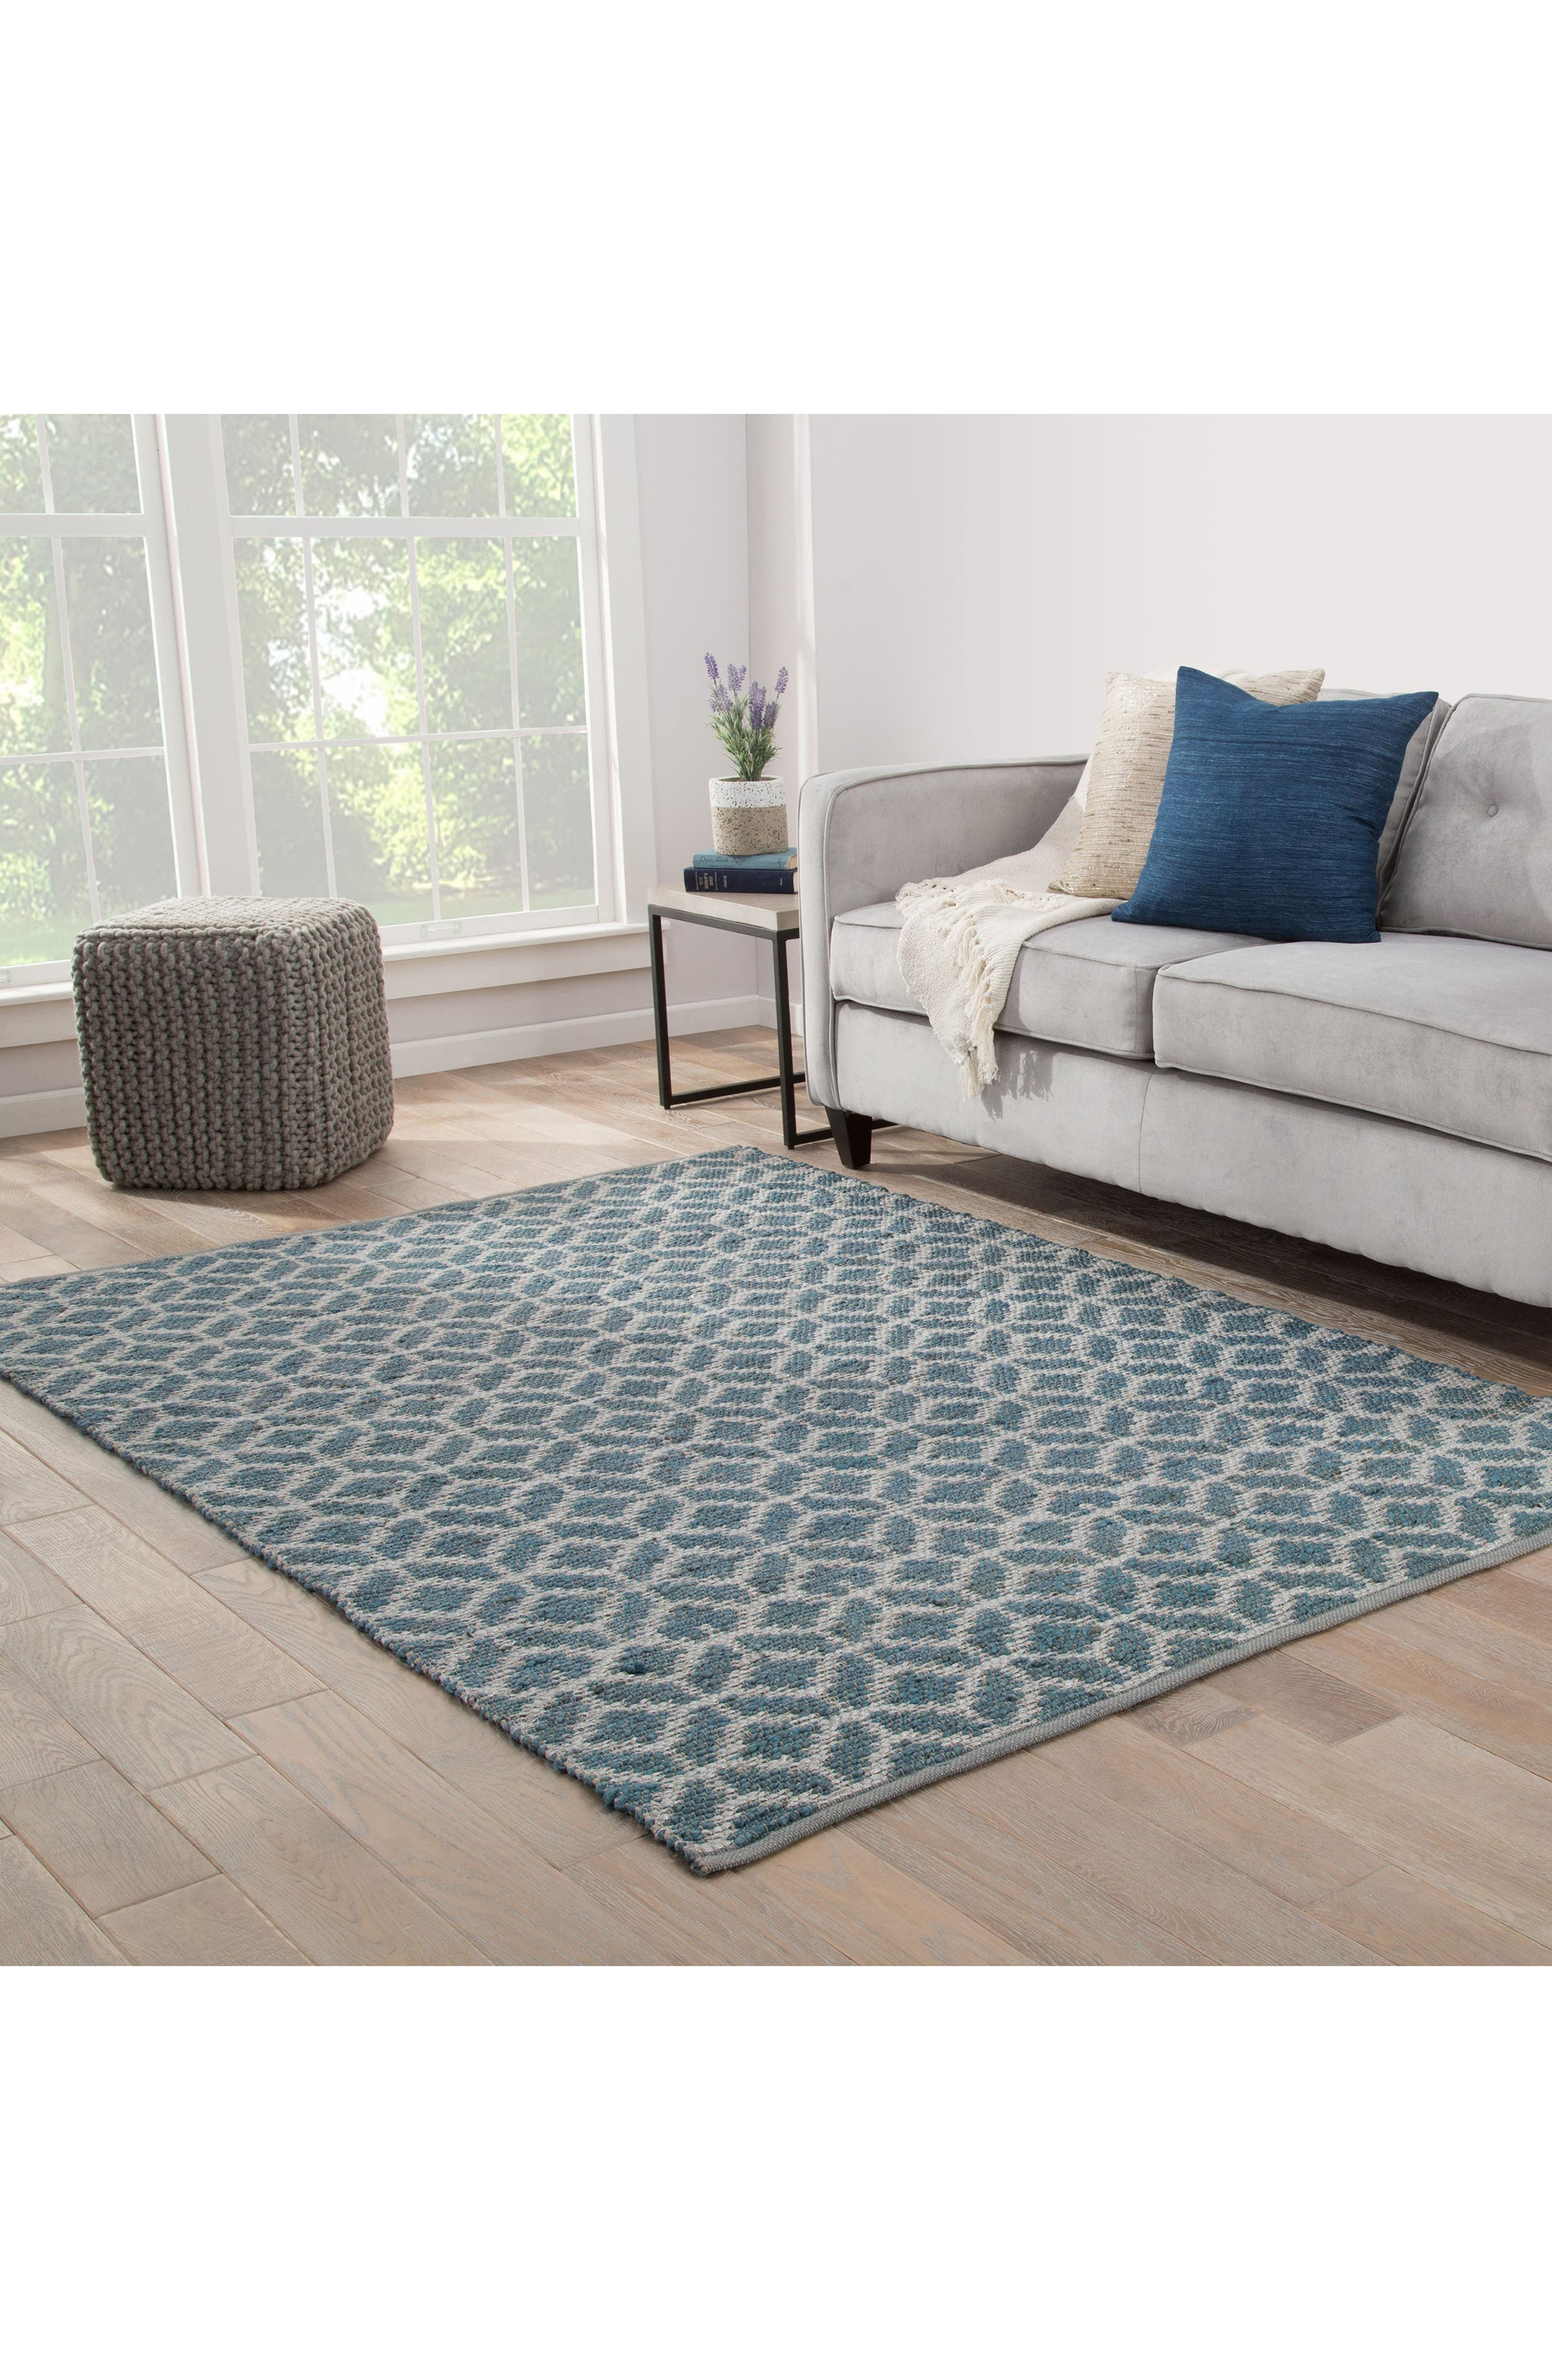 Calm Waters Rug,                             Alternate thumbnail 9, color,                             INDIAN TEAL/ SILVER